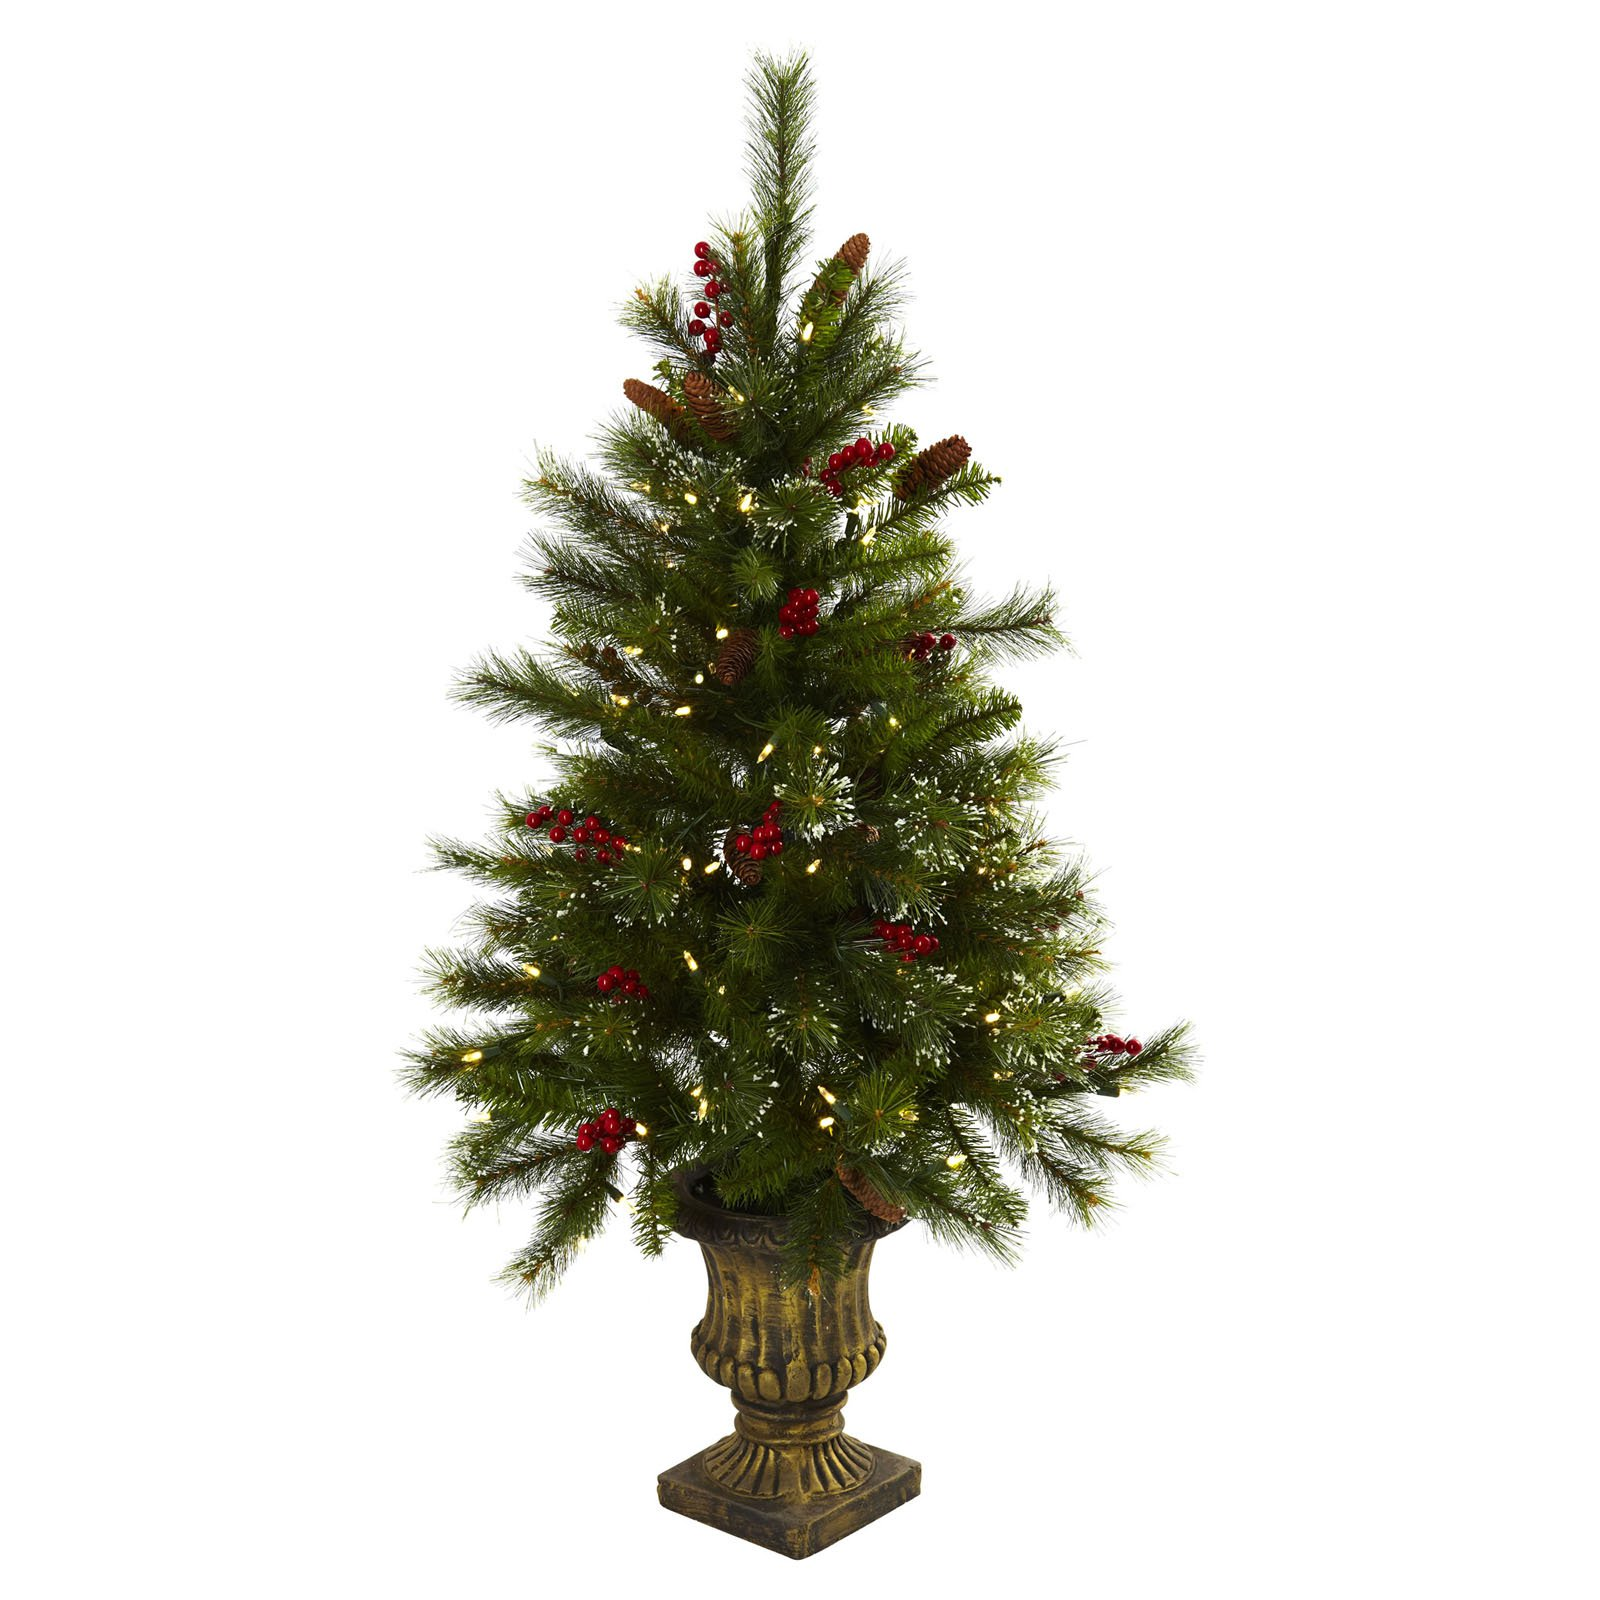 Nearly Natural 4 ft. Pre-lit Christmas Tree with Berries, Pine Cones & Urn - Clear Lights